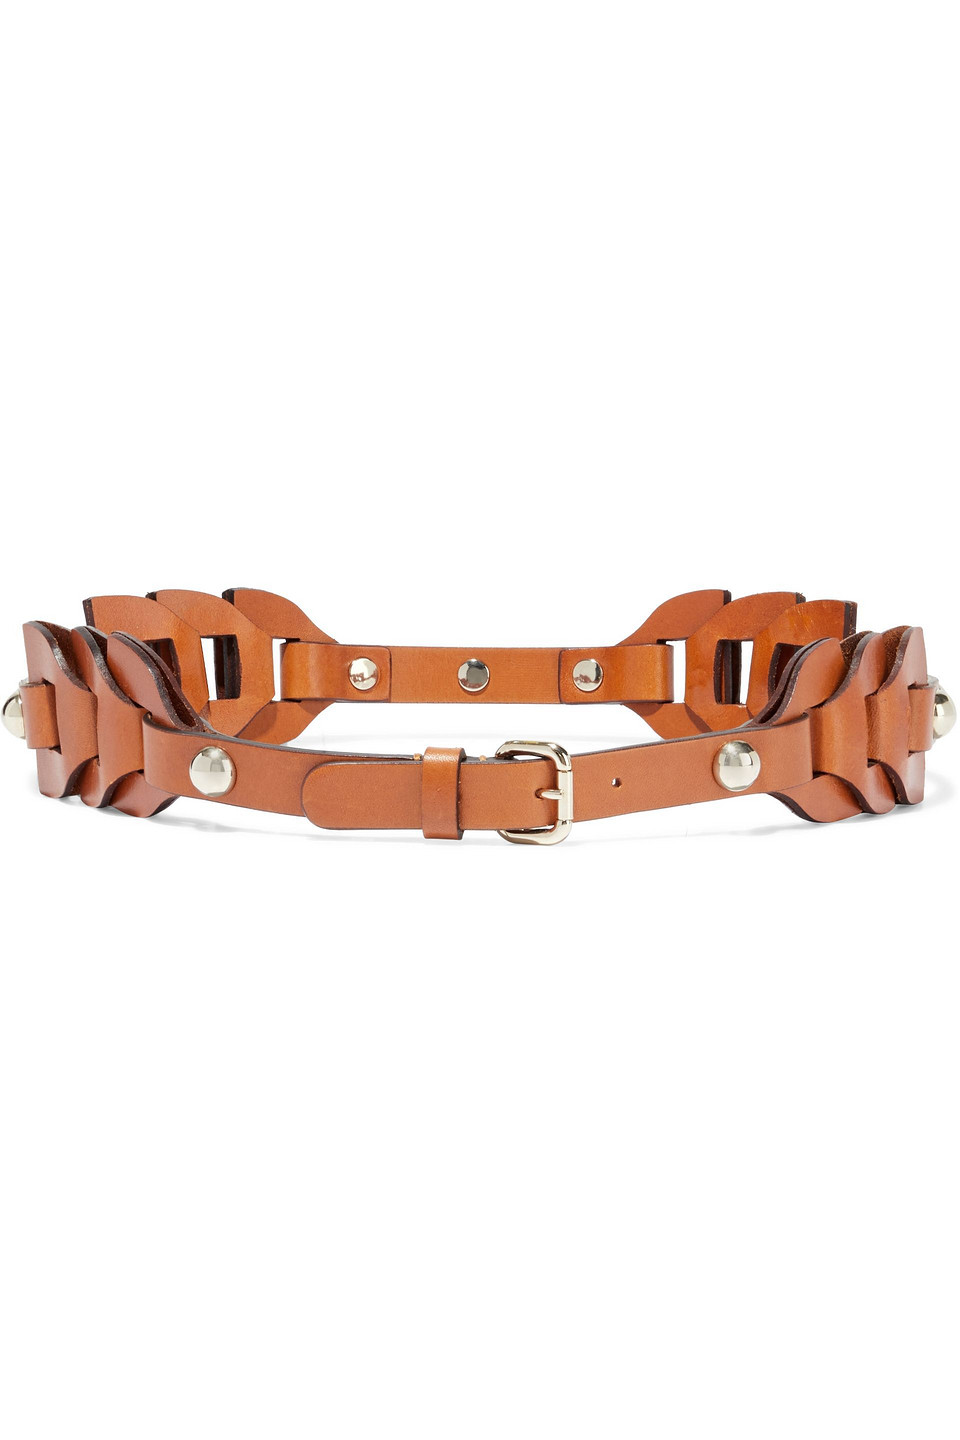 RED(V) | Red(v) Woman Cutout Studded Leather Belt Camel | Clouty